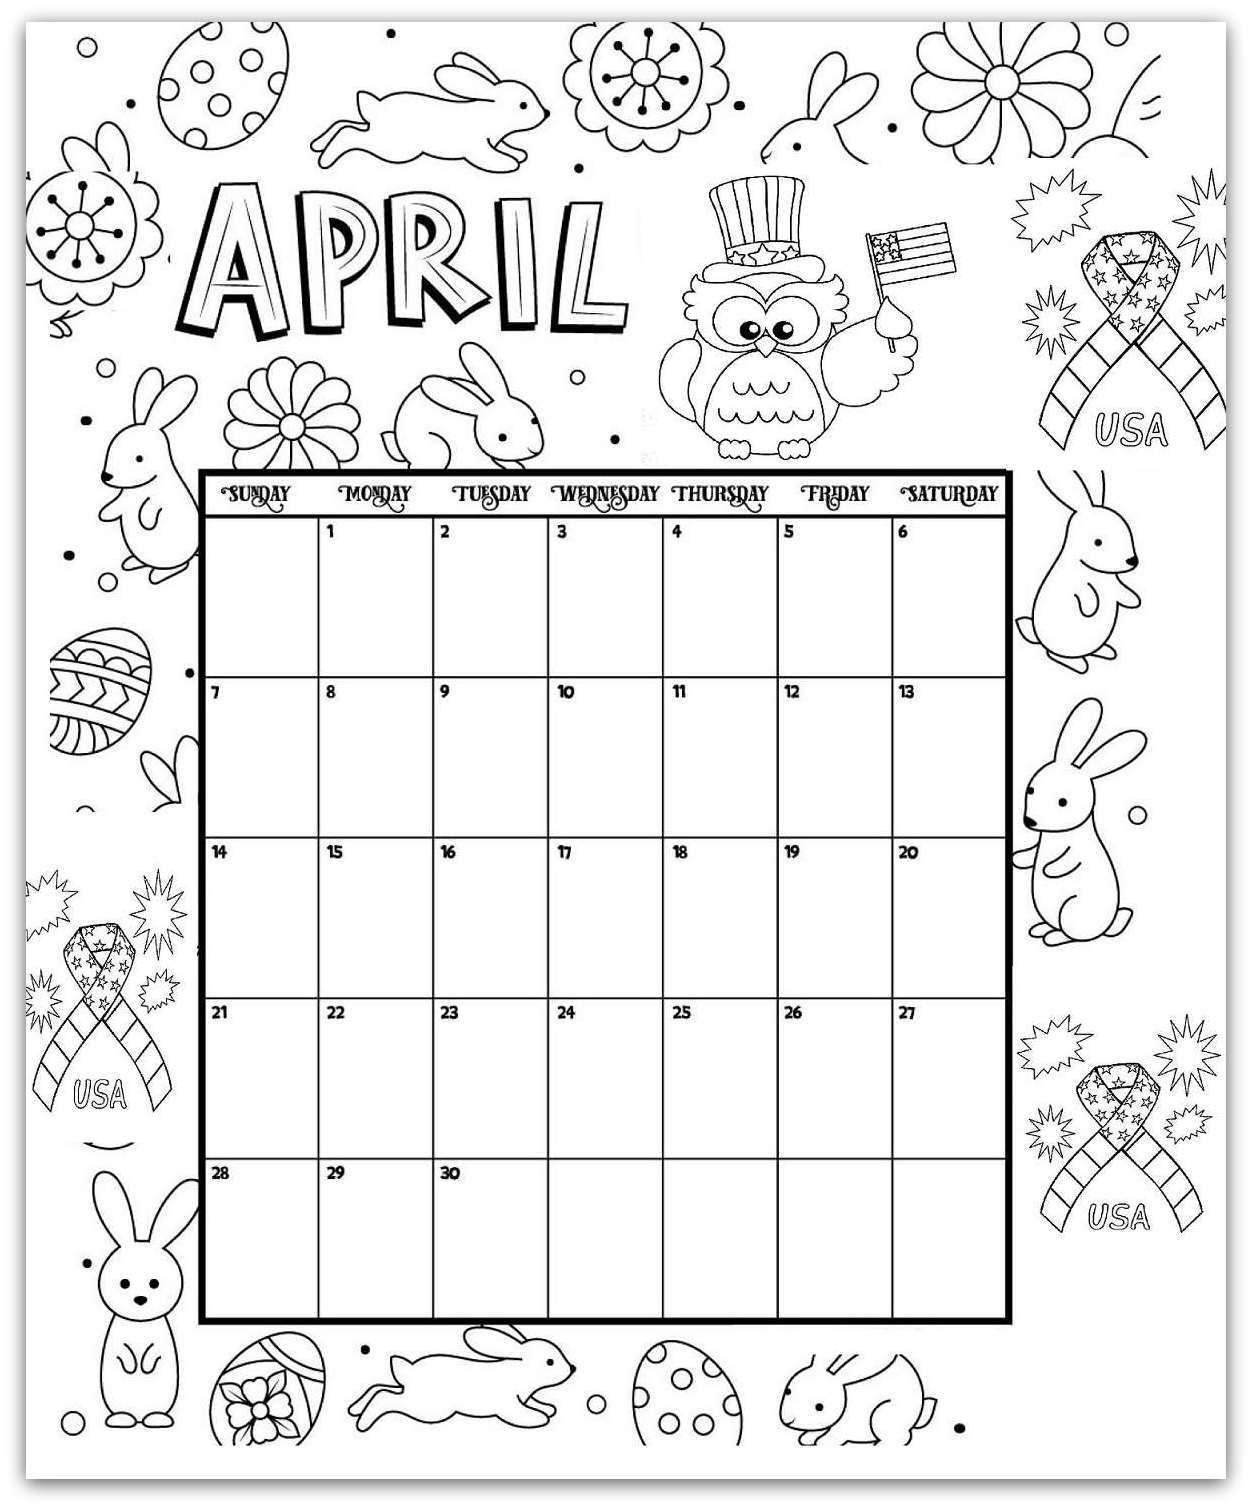 Free Printable Adult October Calendar 2019 Coloring Sheets regarding Free Printable Adult October Calendar 2019 Coloring Sheets